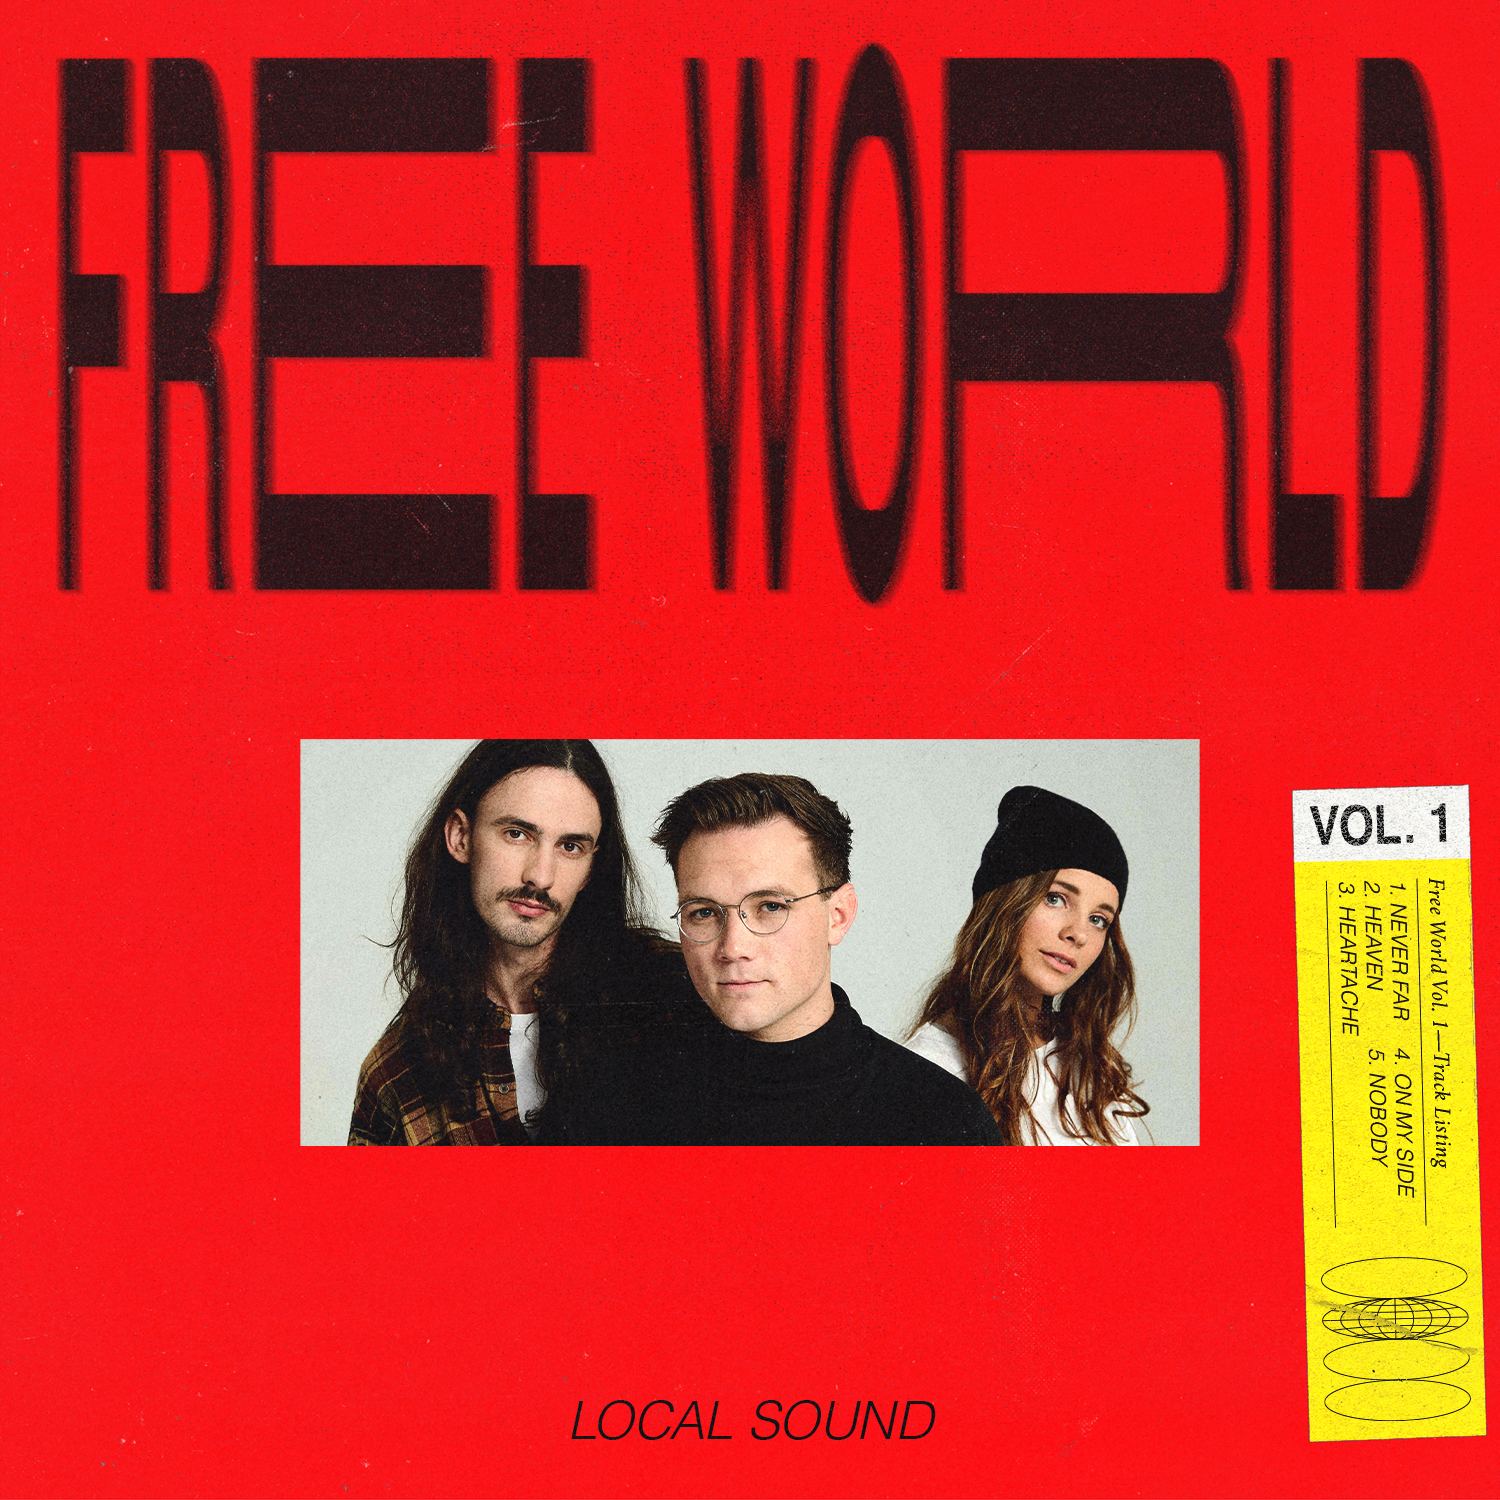 Local Sound - Free World Vol 1